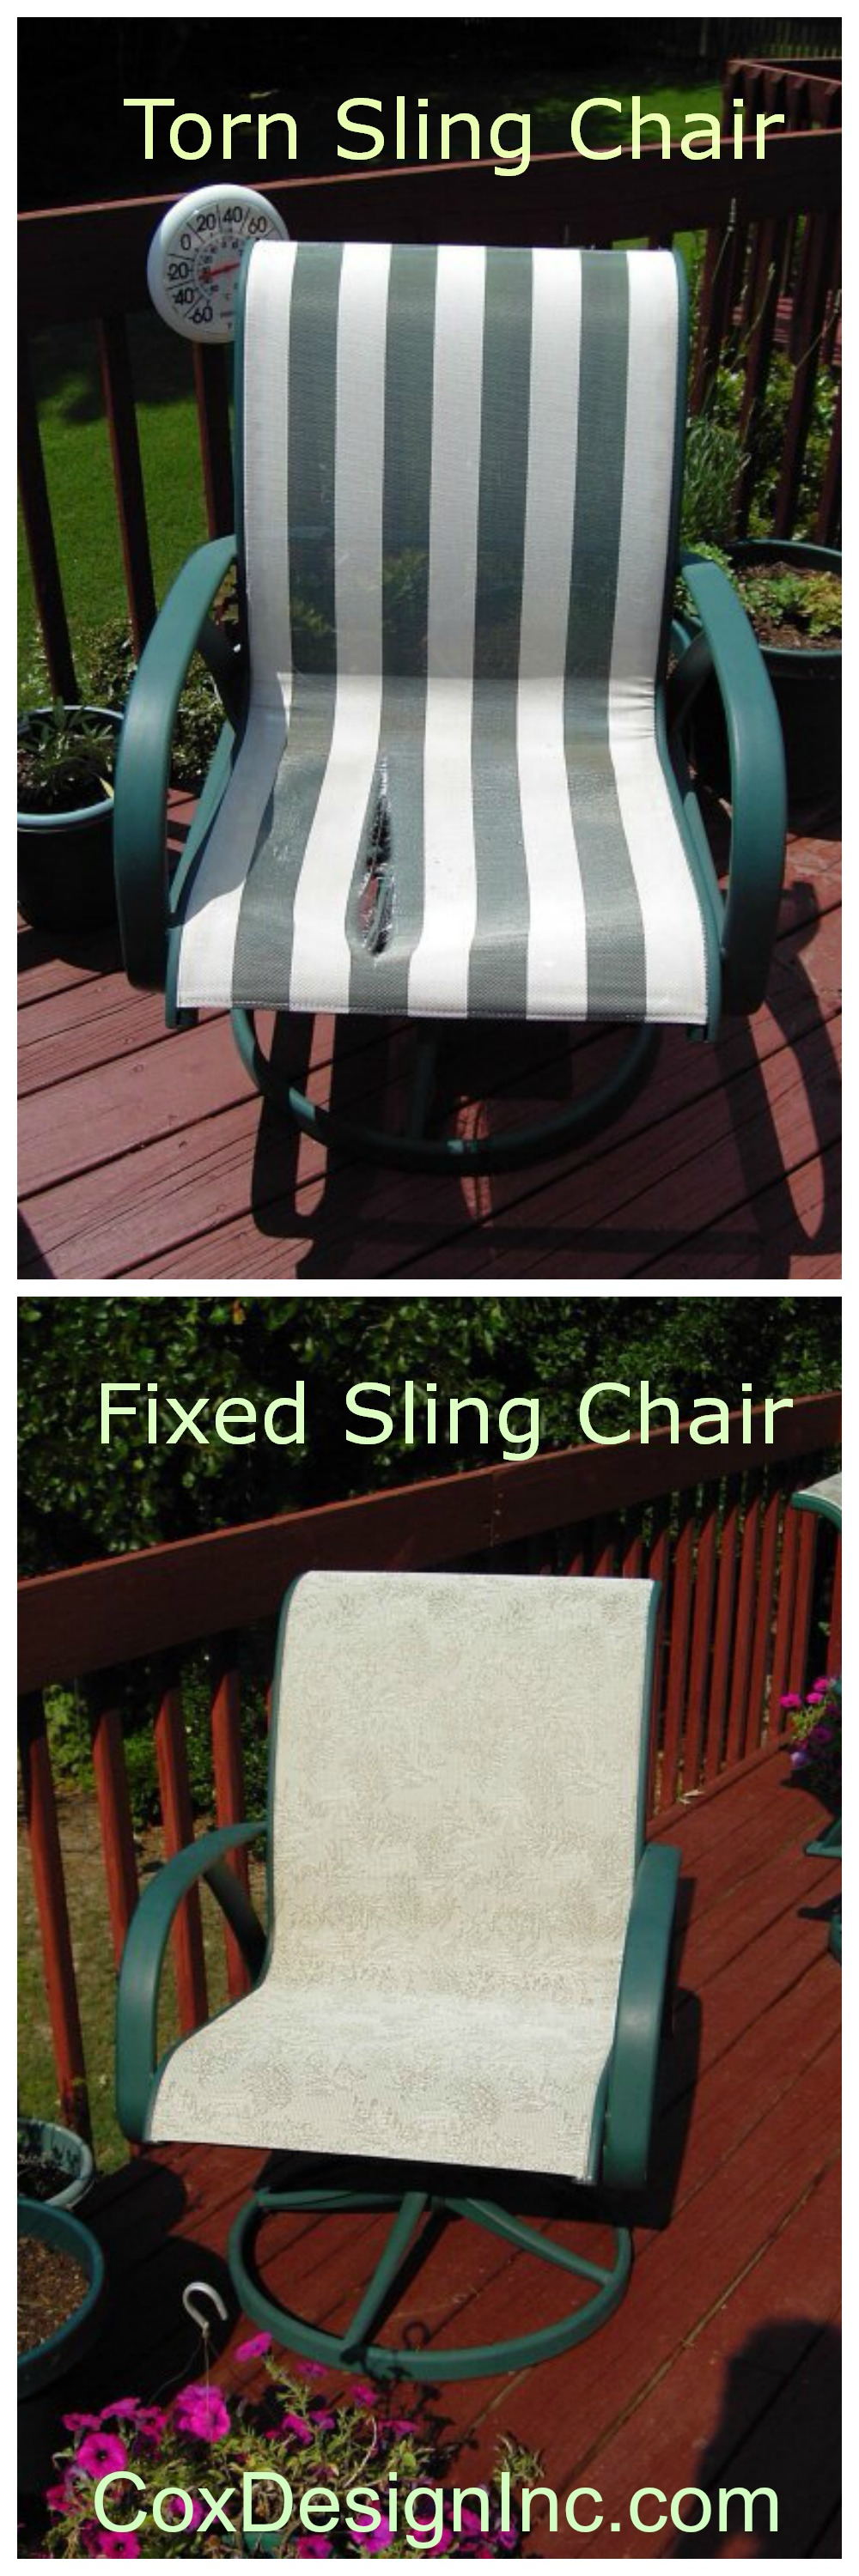 We Can Replace The Fabric In Sling Type Chairs To Make Them Look New Again!